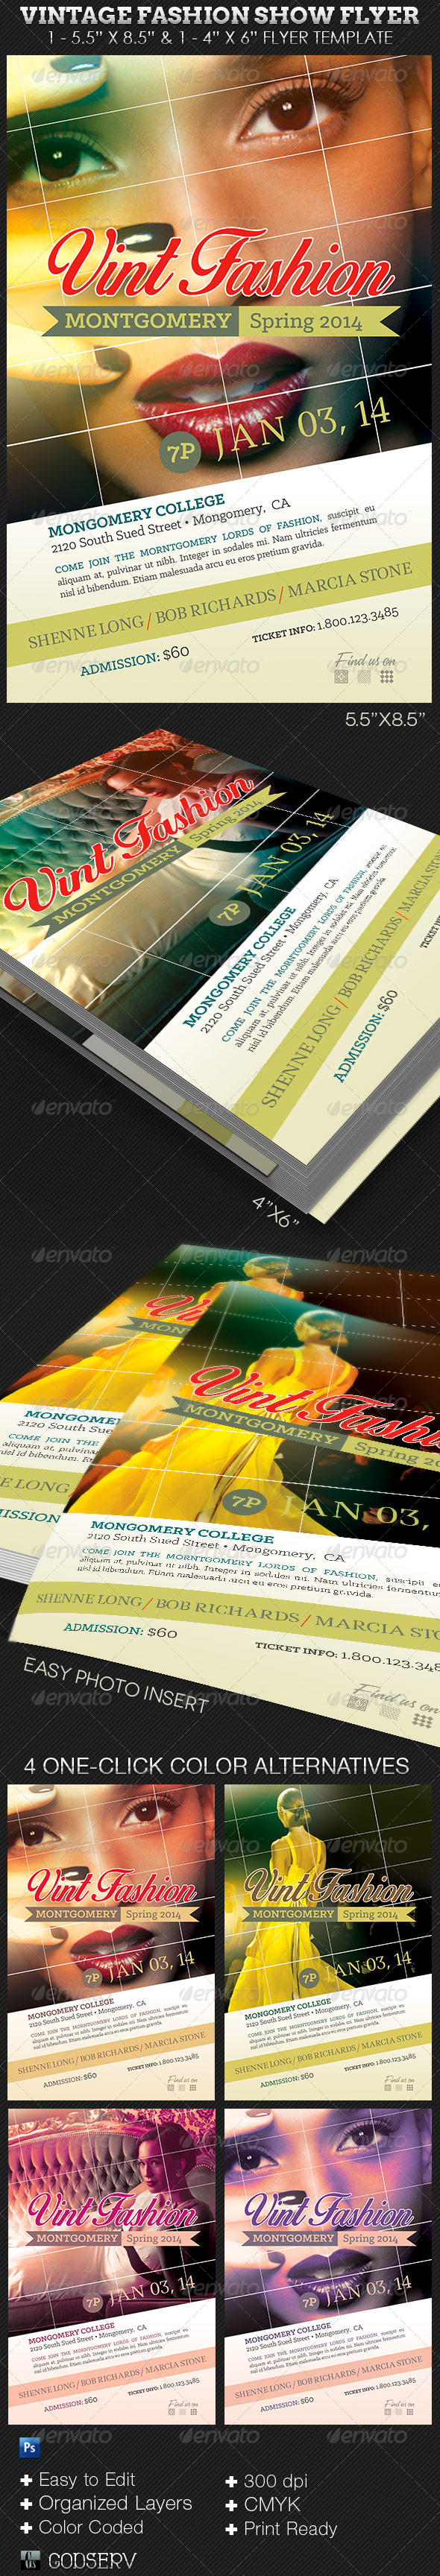 GraphicRiver Vintage Fashion Show Flyer Template 7525044